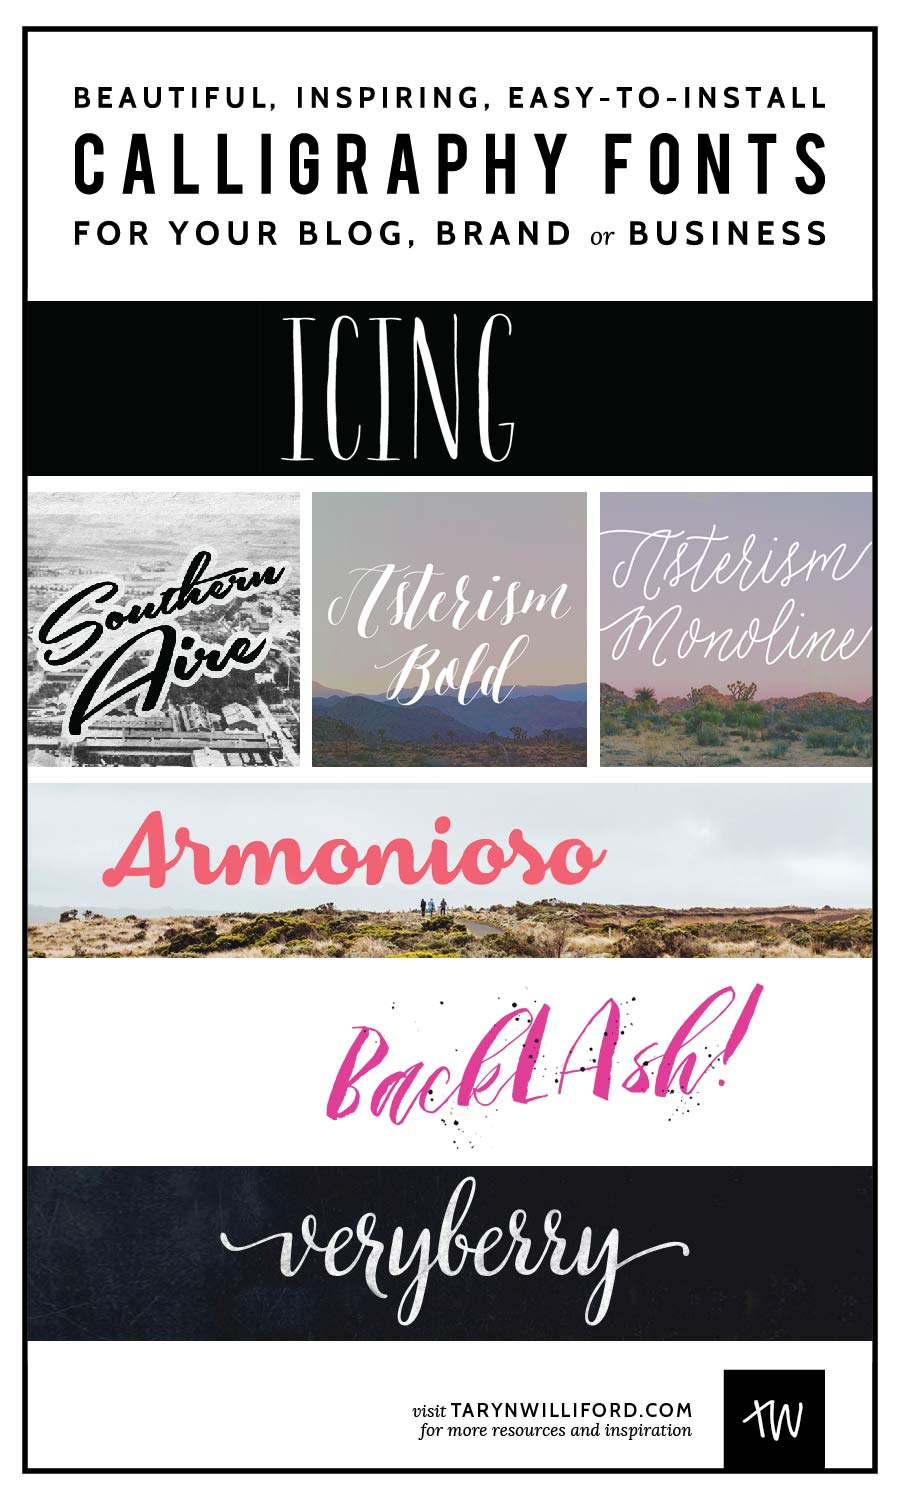 Calligraphy Fonts for Blogs and Businesses